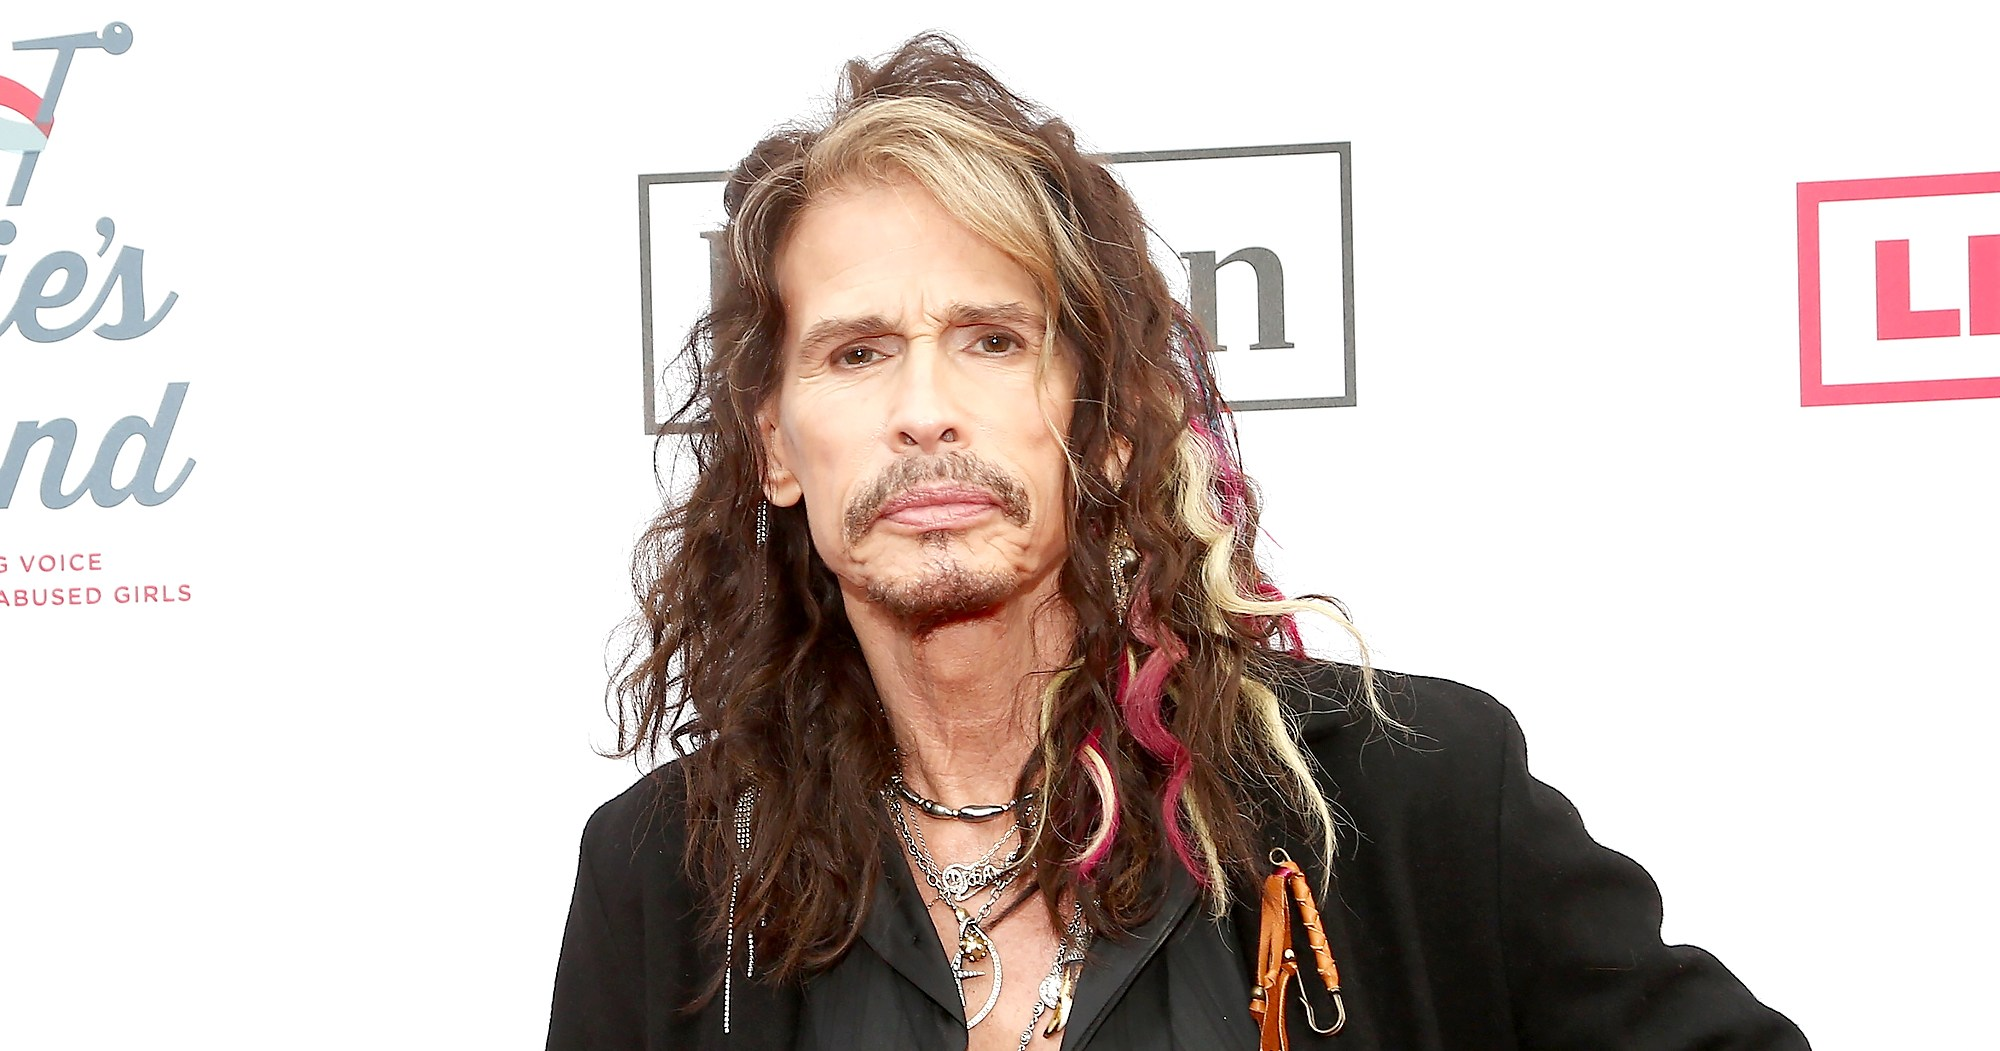 Steven Tyler Built His Kids an Indoor Pool to 'Protect Them'